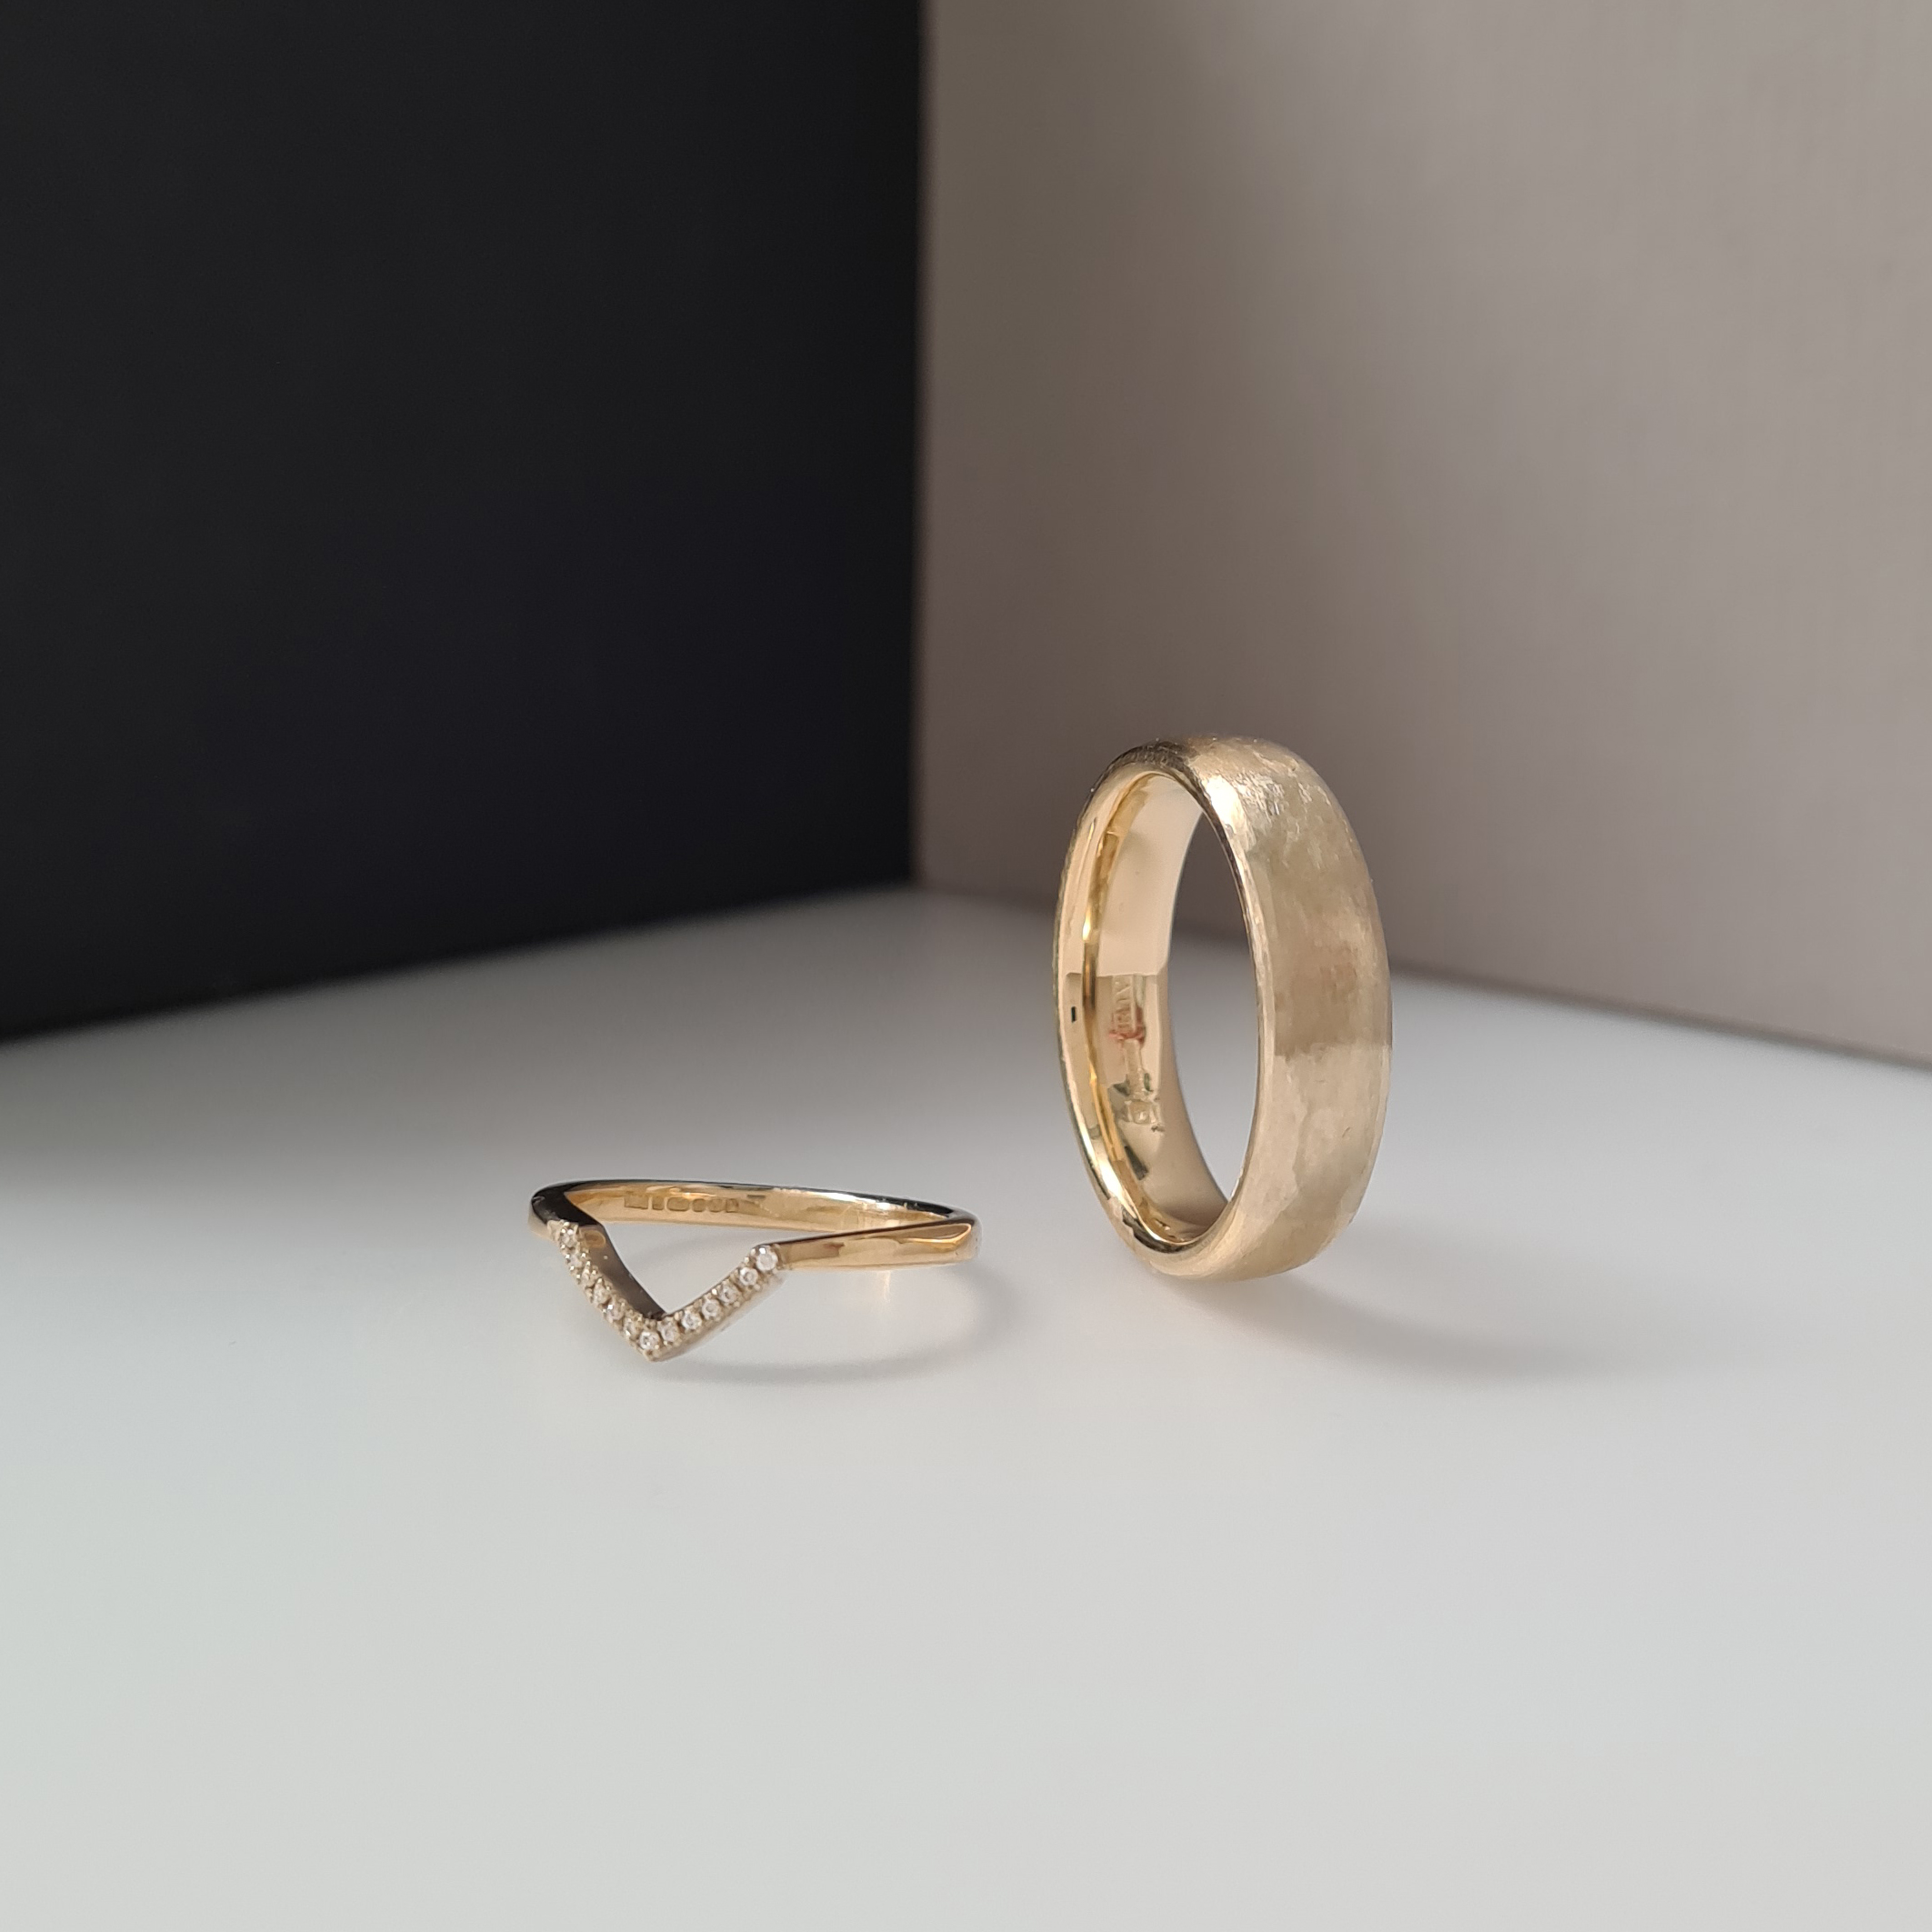 Woman's wedding ring with a V-shaped detail set with diamonds resting on a man's ring on a color block background of white, grey and black.